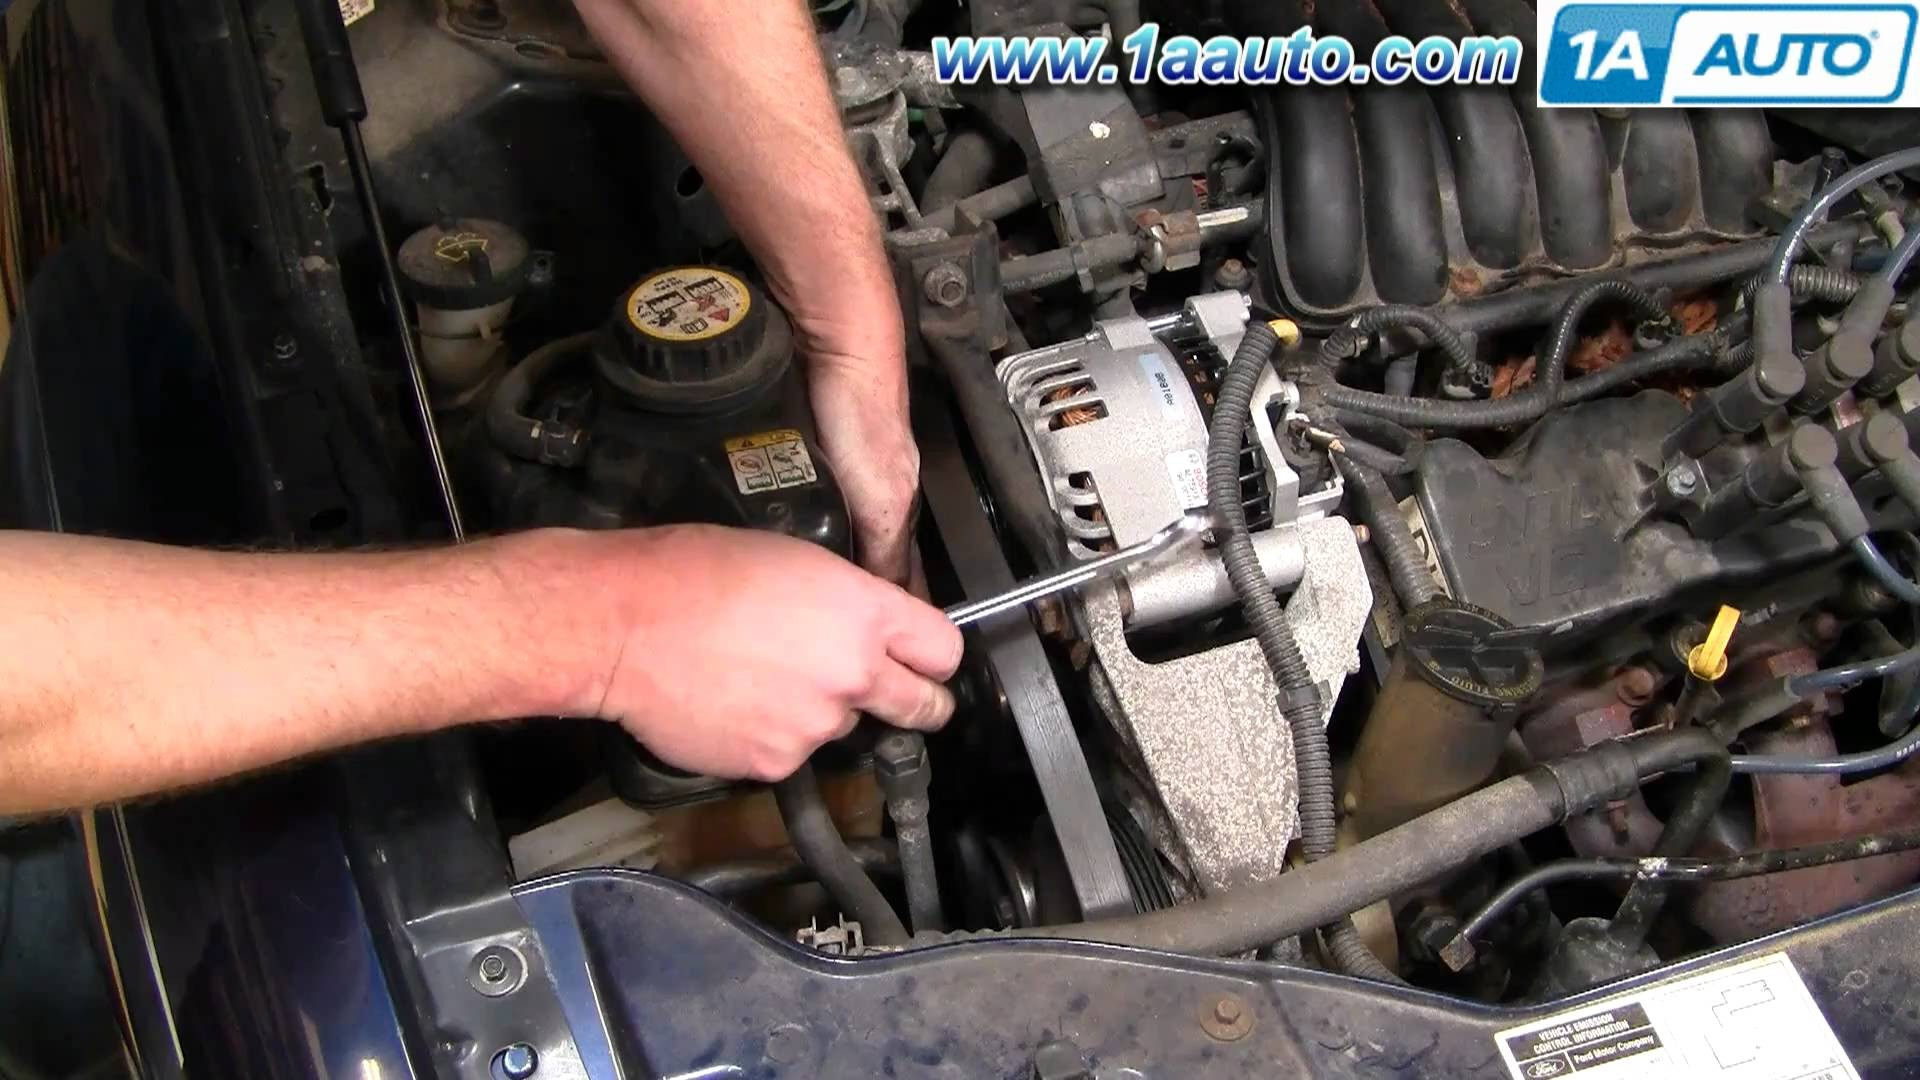 2001 Ford Taurus Engine Diagram Focus Stereo Wiring 2002 Blaplunk Radio How To Install Replace Serpentine Belt Idler Pulley 3